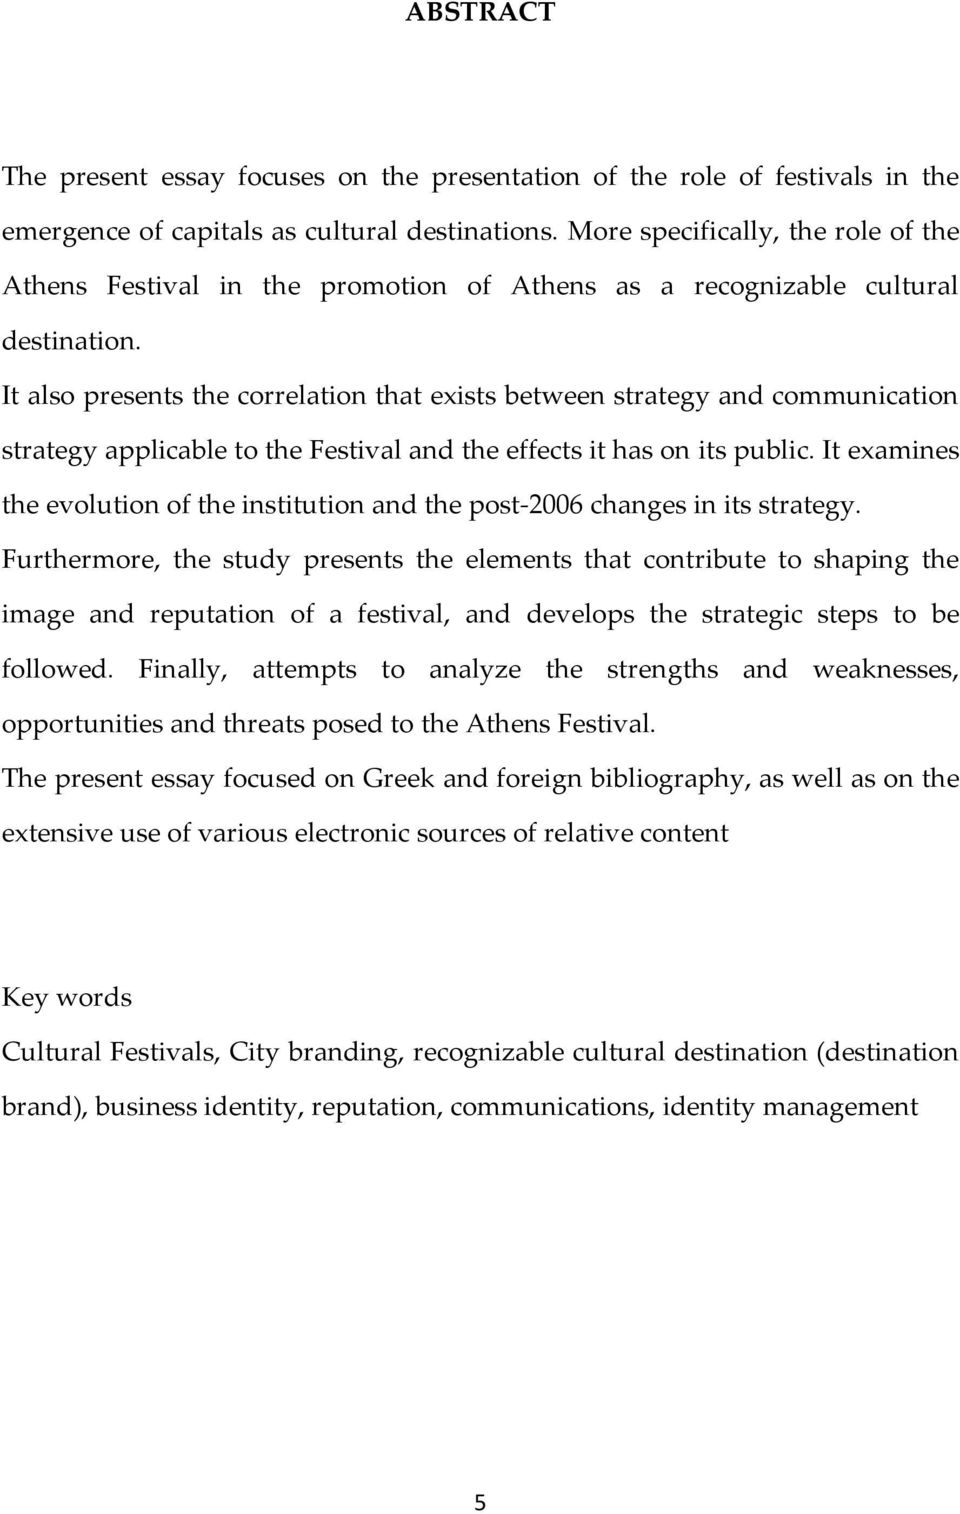 It also presents the correlation that exists between strategy and communication strategy applicable to the Festival and the effects it has on its public.